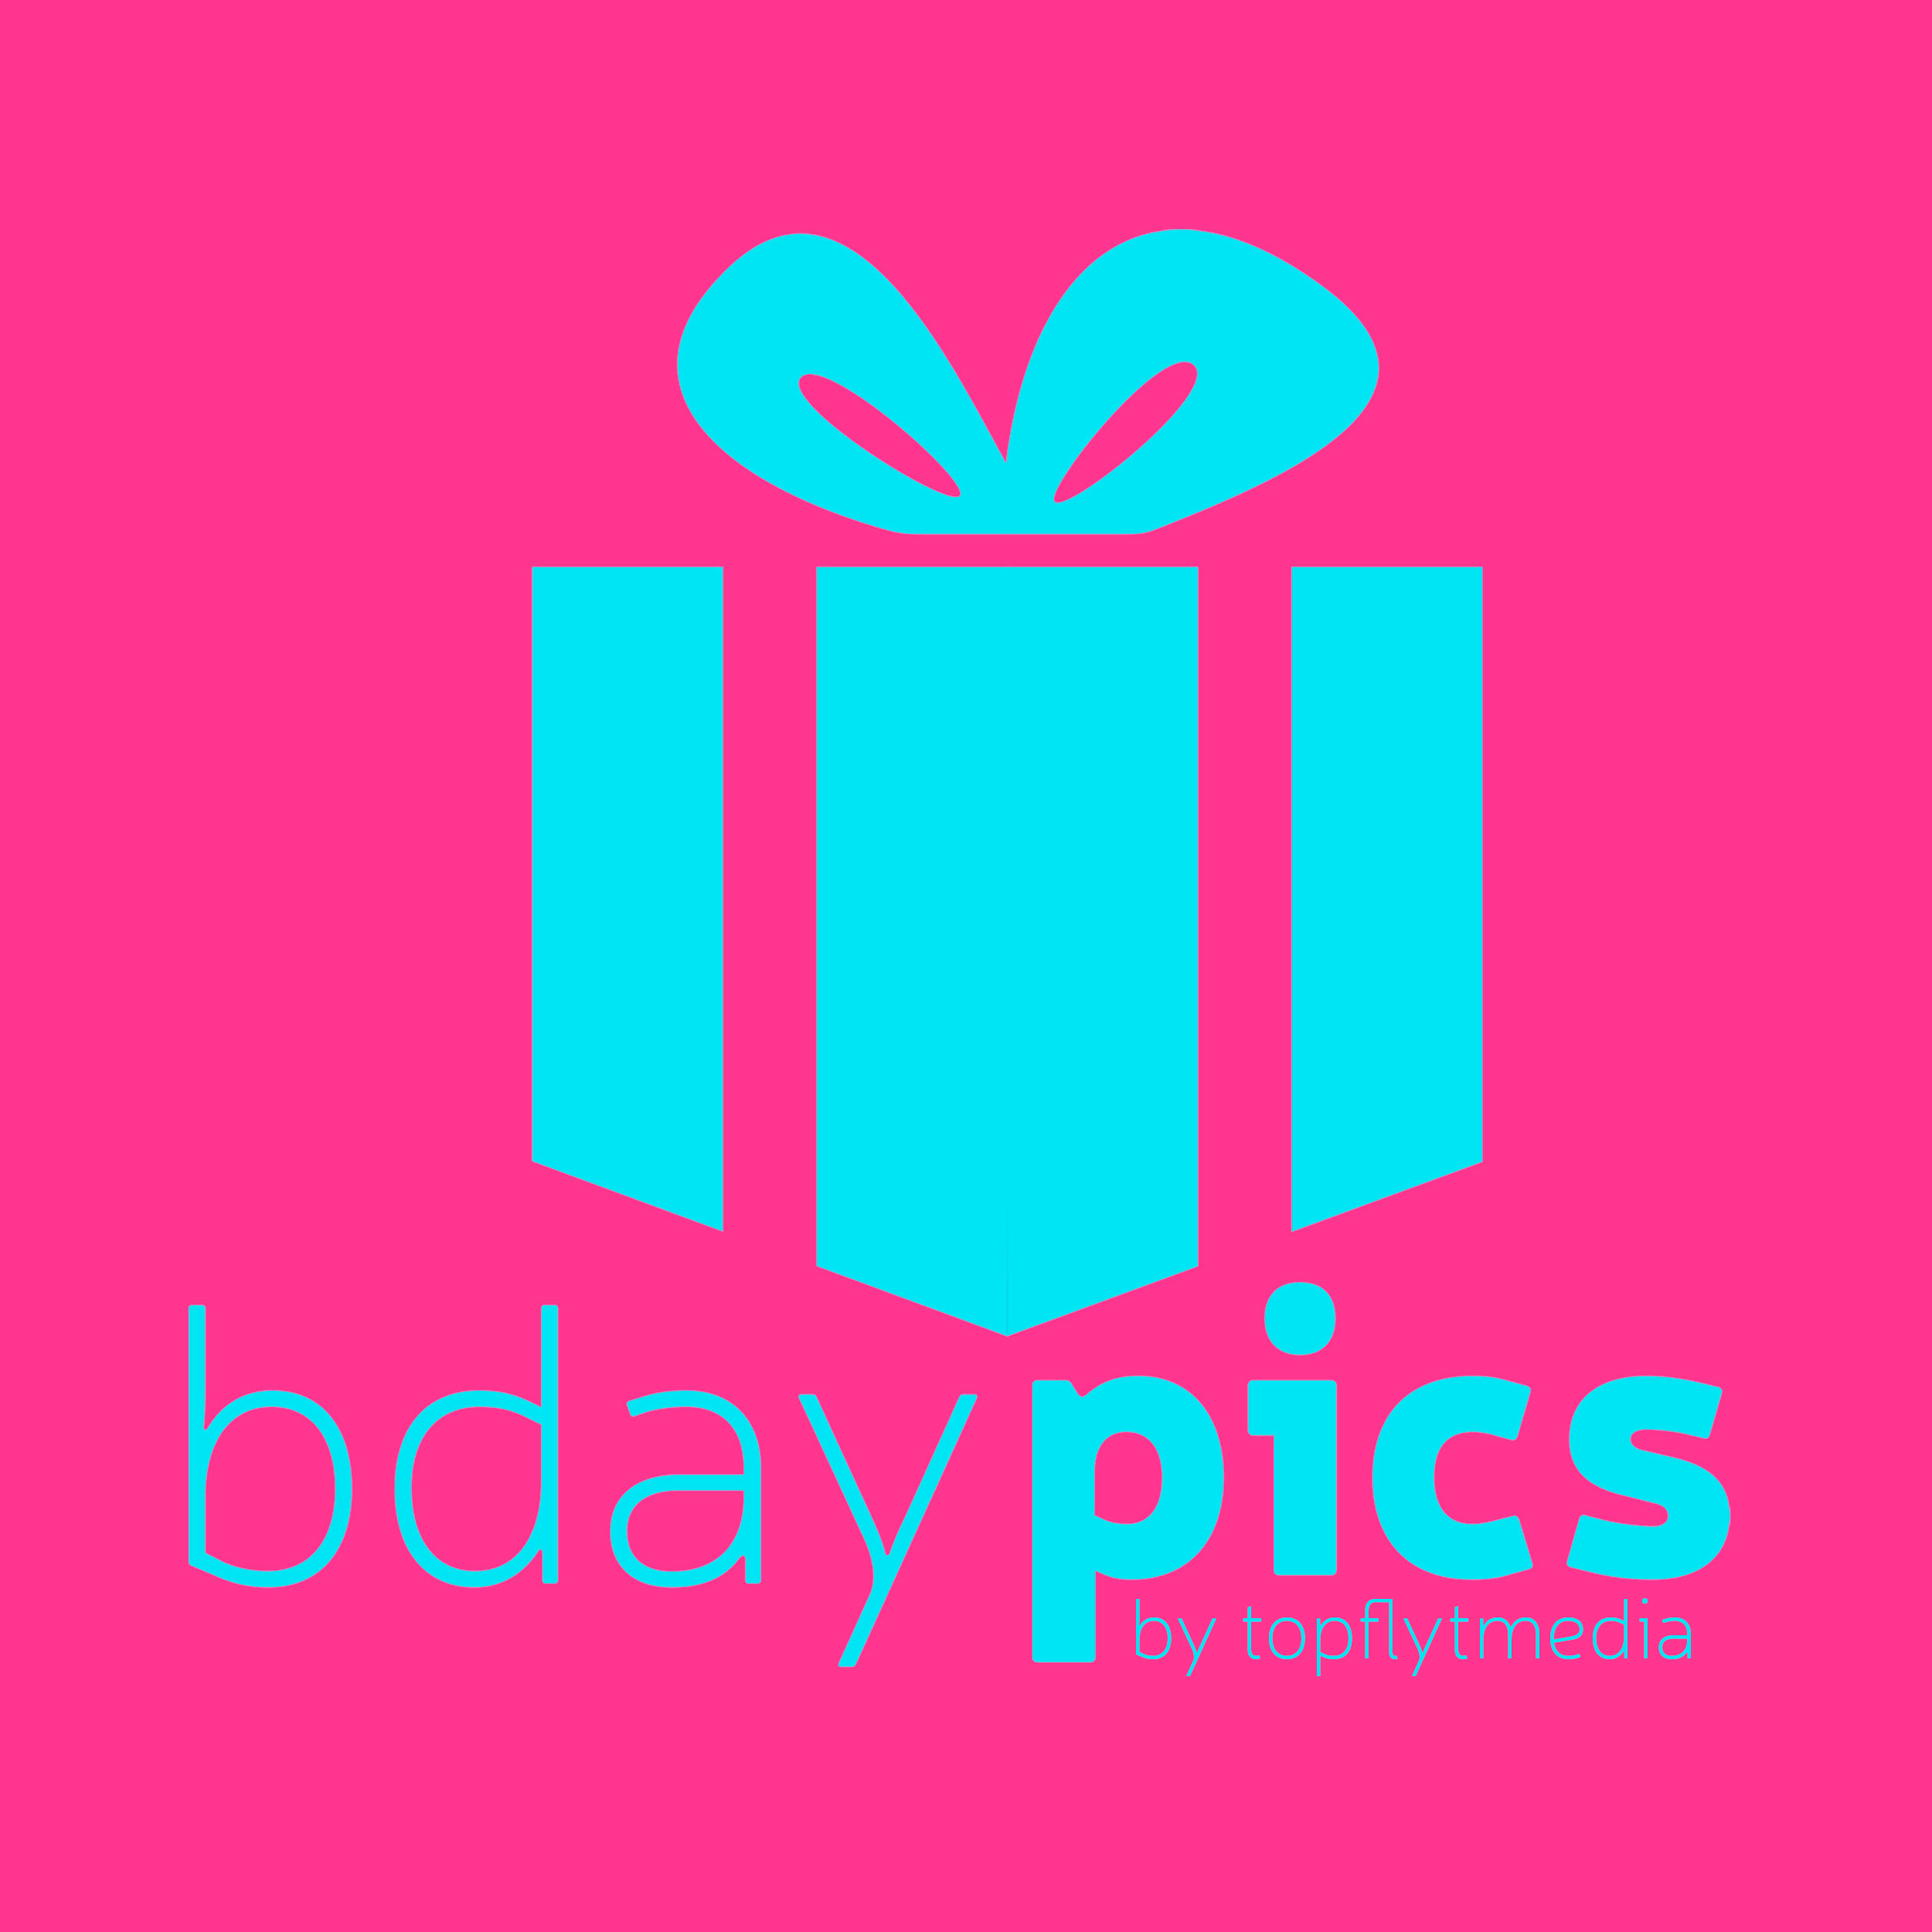 bday-pics-logo---Blue-on-Pink.png